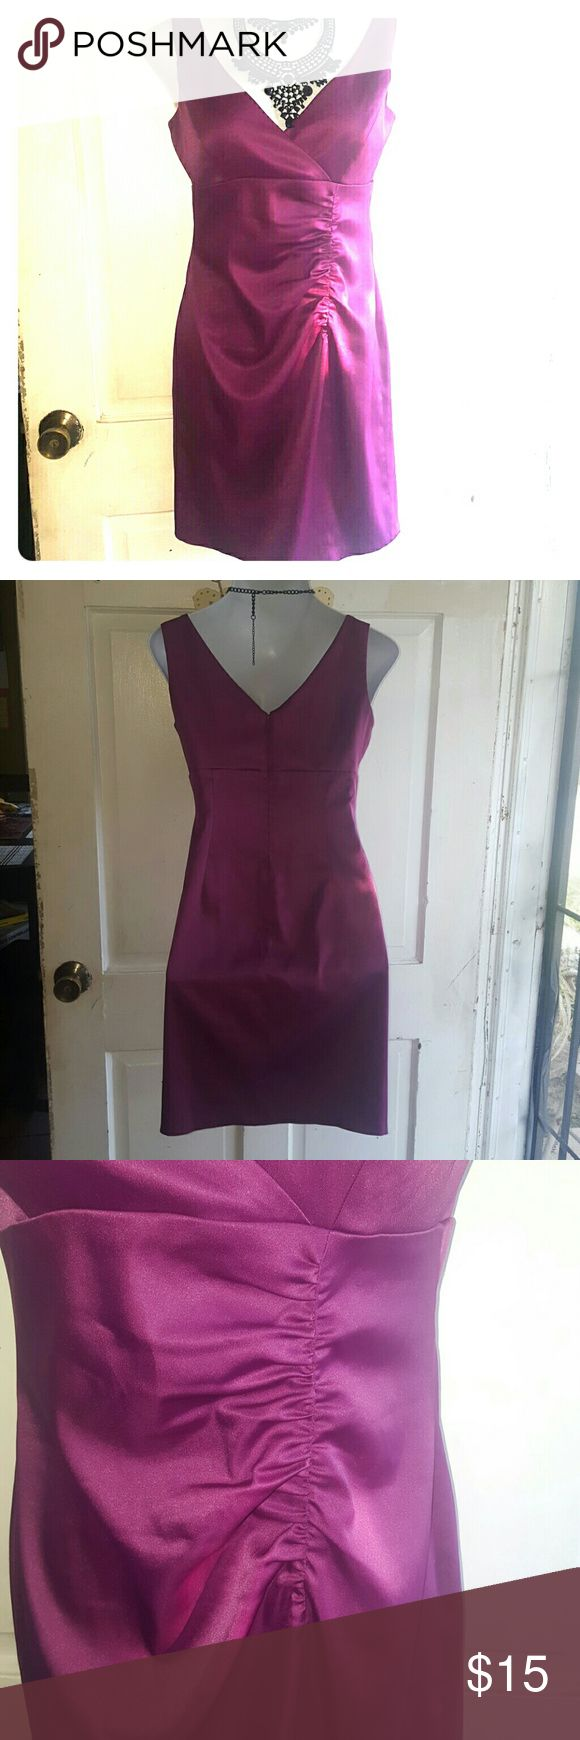 💣💣Jones Wear Dress. Purple satin look dress, with zipper down back. Very low neckline cut, looks gorgeous with any necklace or plain with your hair up and some beautiful earing dangling down.. ??. Worn once for an outdoor wedding, only couple hours, so this dress is in new conditions. Jones Wear Dress Dresses Midi